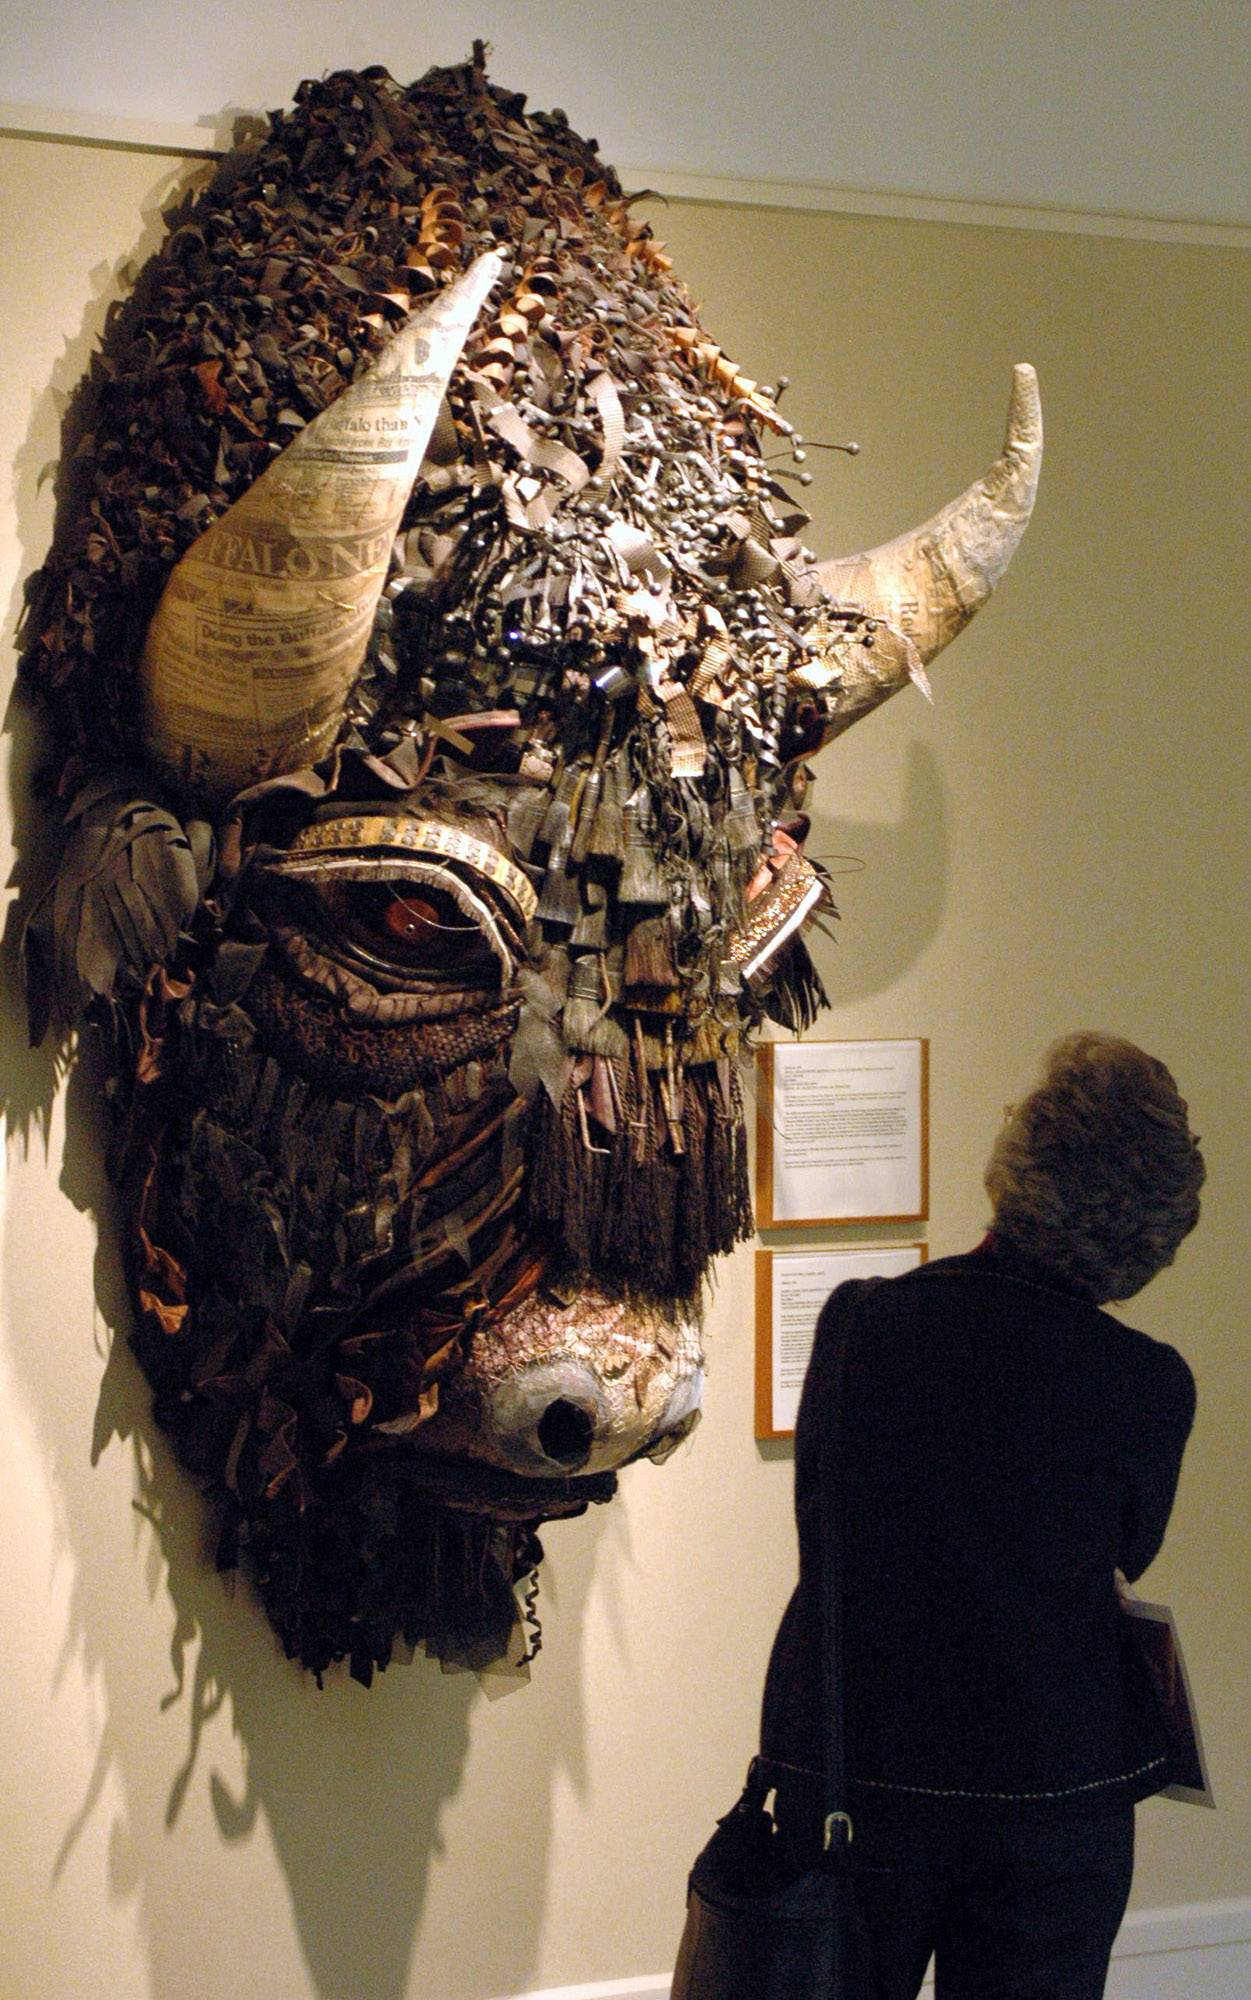 A tourist looks at Buffalo, a mixed media piece by artist Holly Hughes, which is part of the Capitol Art Collection at the Capitol in Santa Fe, N.M. The collection was created in 1991 and consists of nearly 600 works exhibited in the building's public spaces and on the grounds outside. The collection is currently valued at more than $5.6 million.